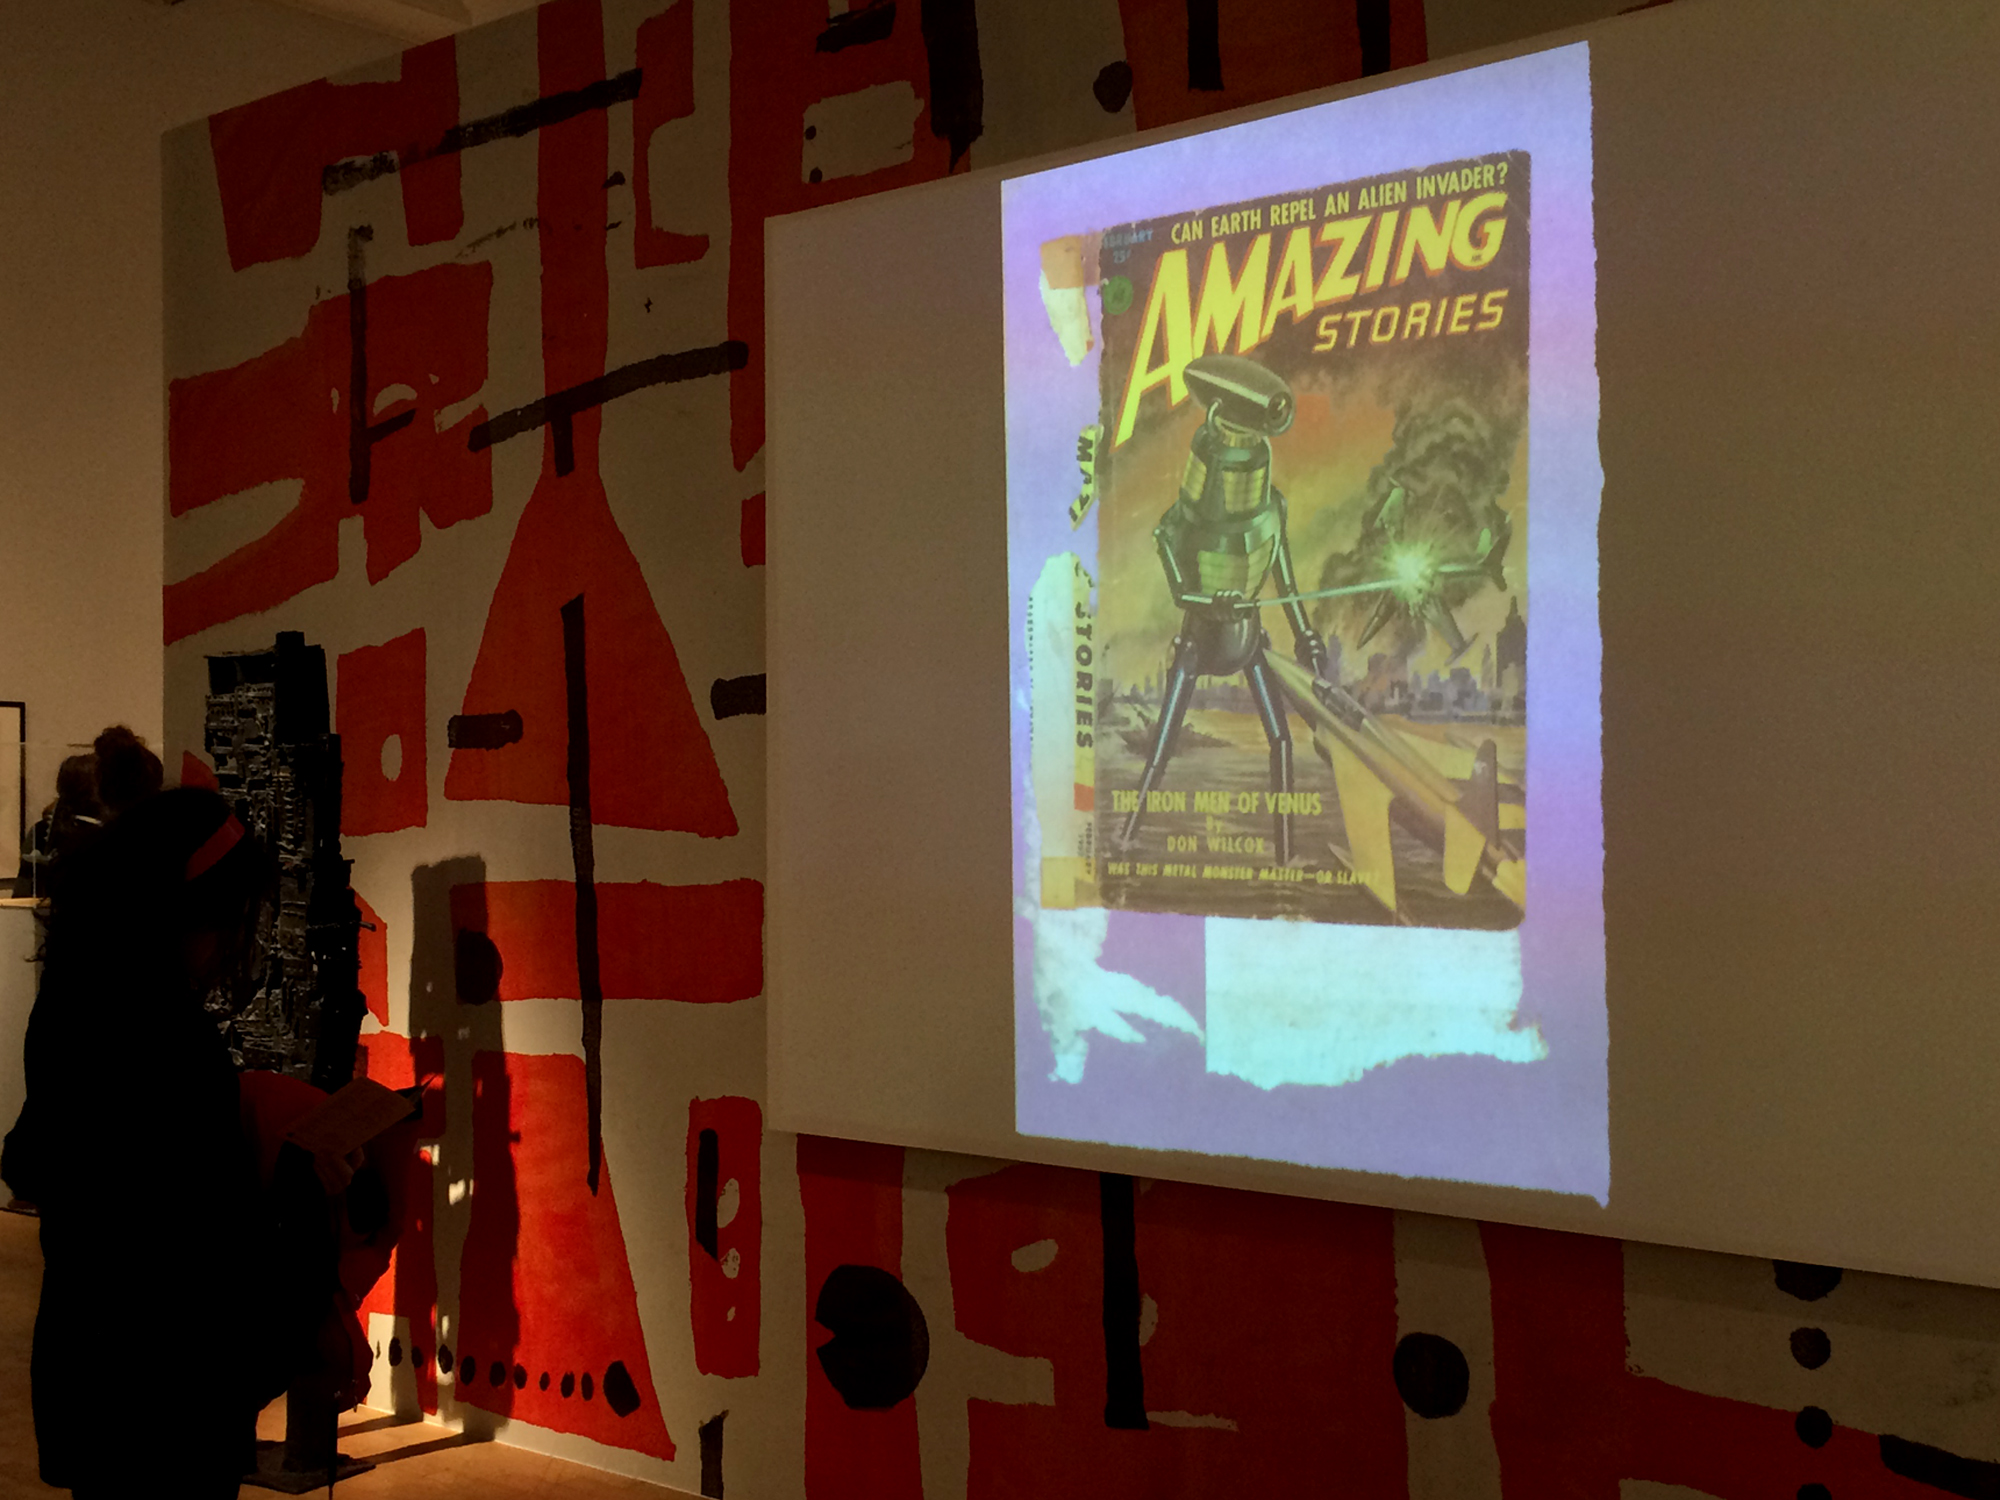 Paolozzi projected images